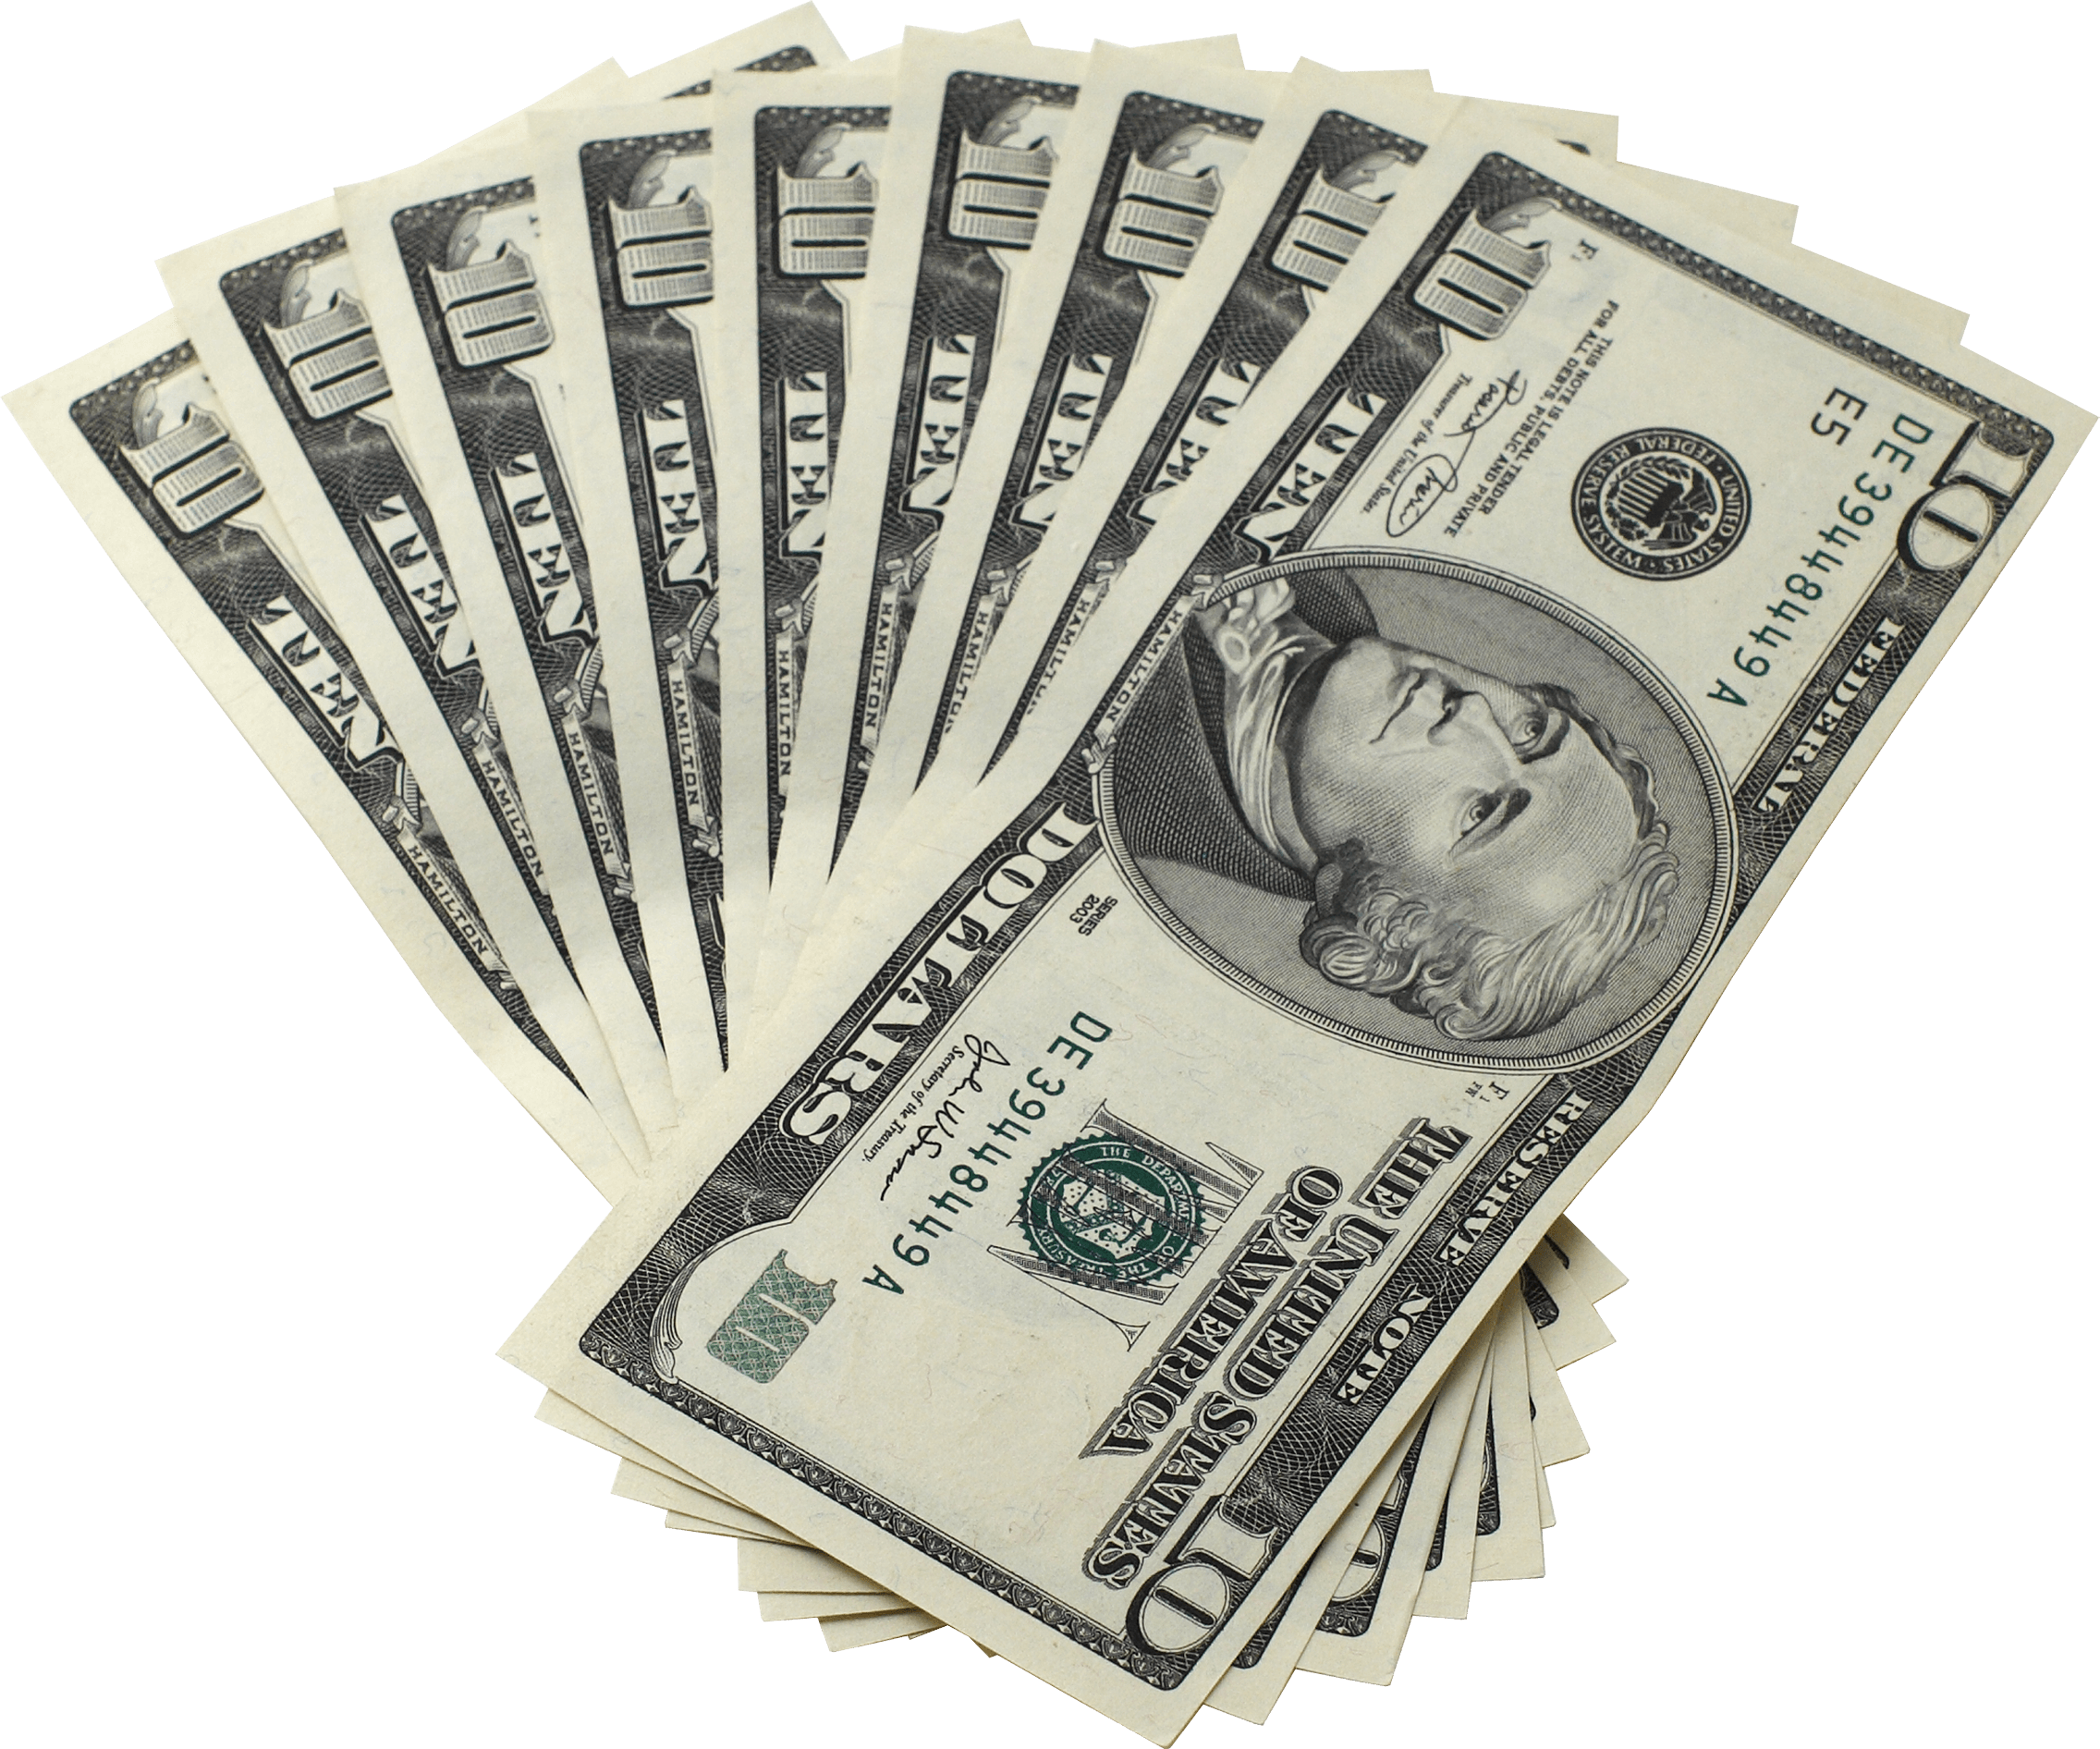 Clipart of money bills transparent stock Money transparent PNG images - StickPNG transparent stock